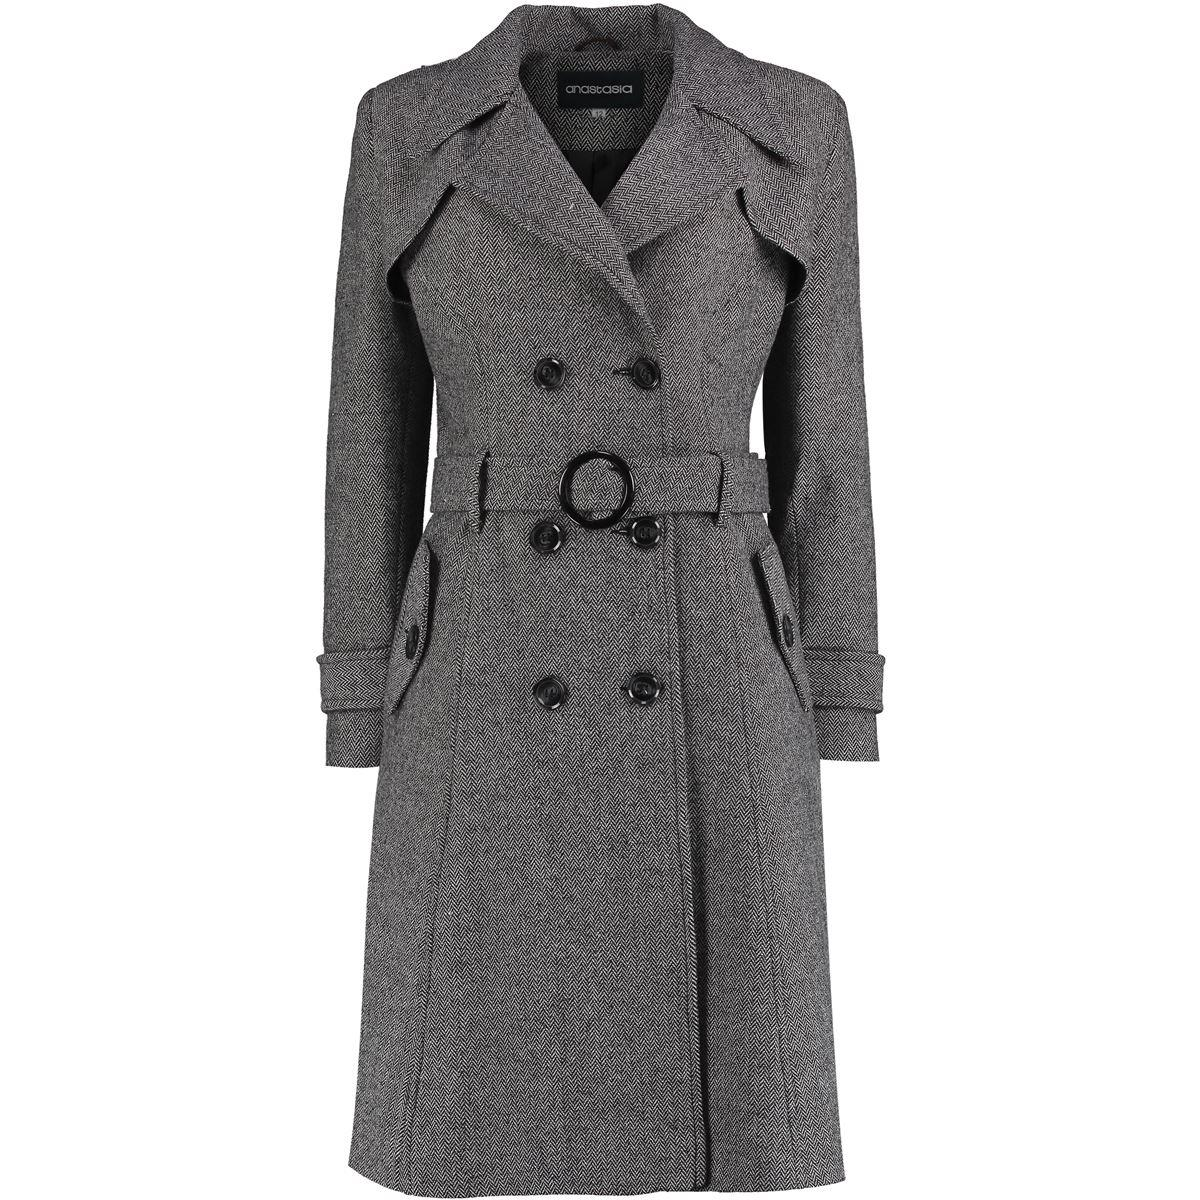 Anastasia - Black White Herring Bone Tweed Winter Womens Trench Coat